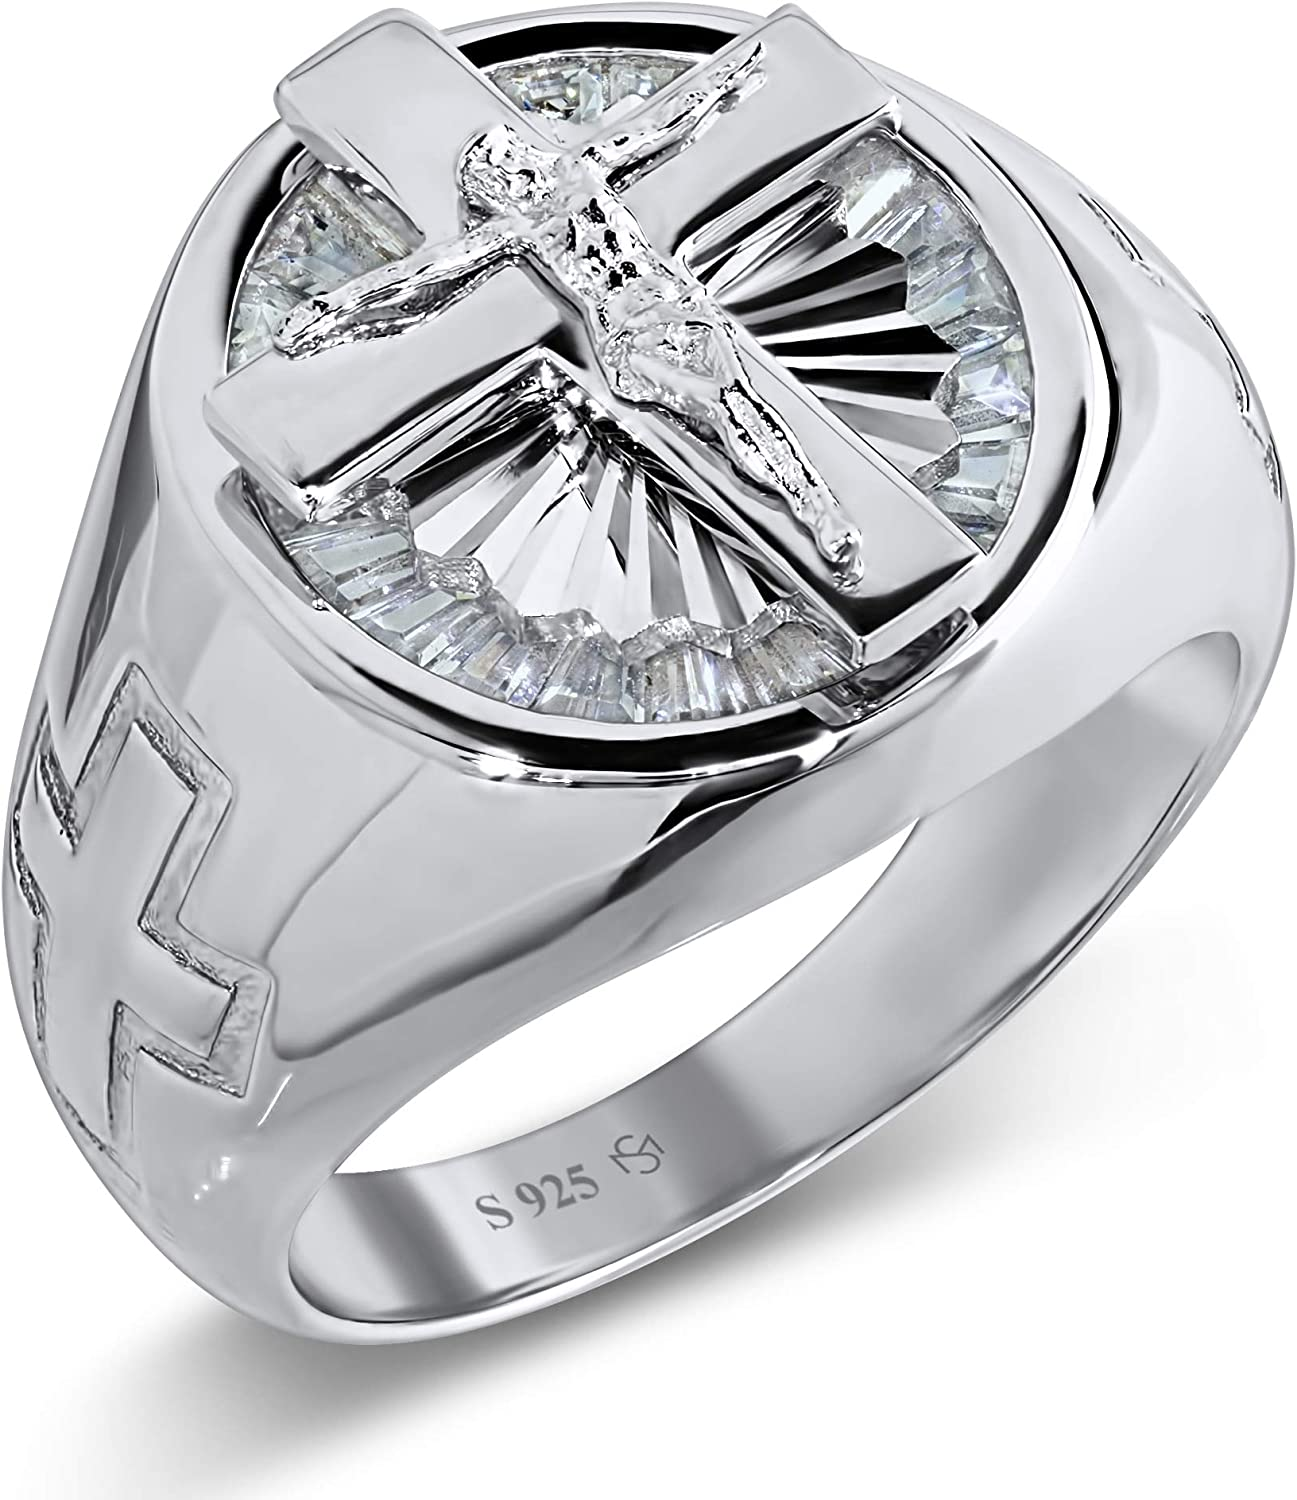 [2-5 Days Delivery] Men's Sterling Silver .925 Jesus Cross Crucifix Ring with 22 Baguette Cubic Zirconia (CZ) Stones, Platinum Plated Jewelry